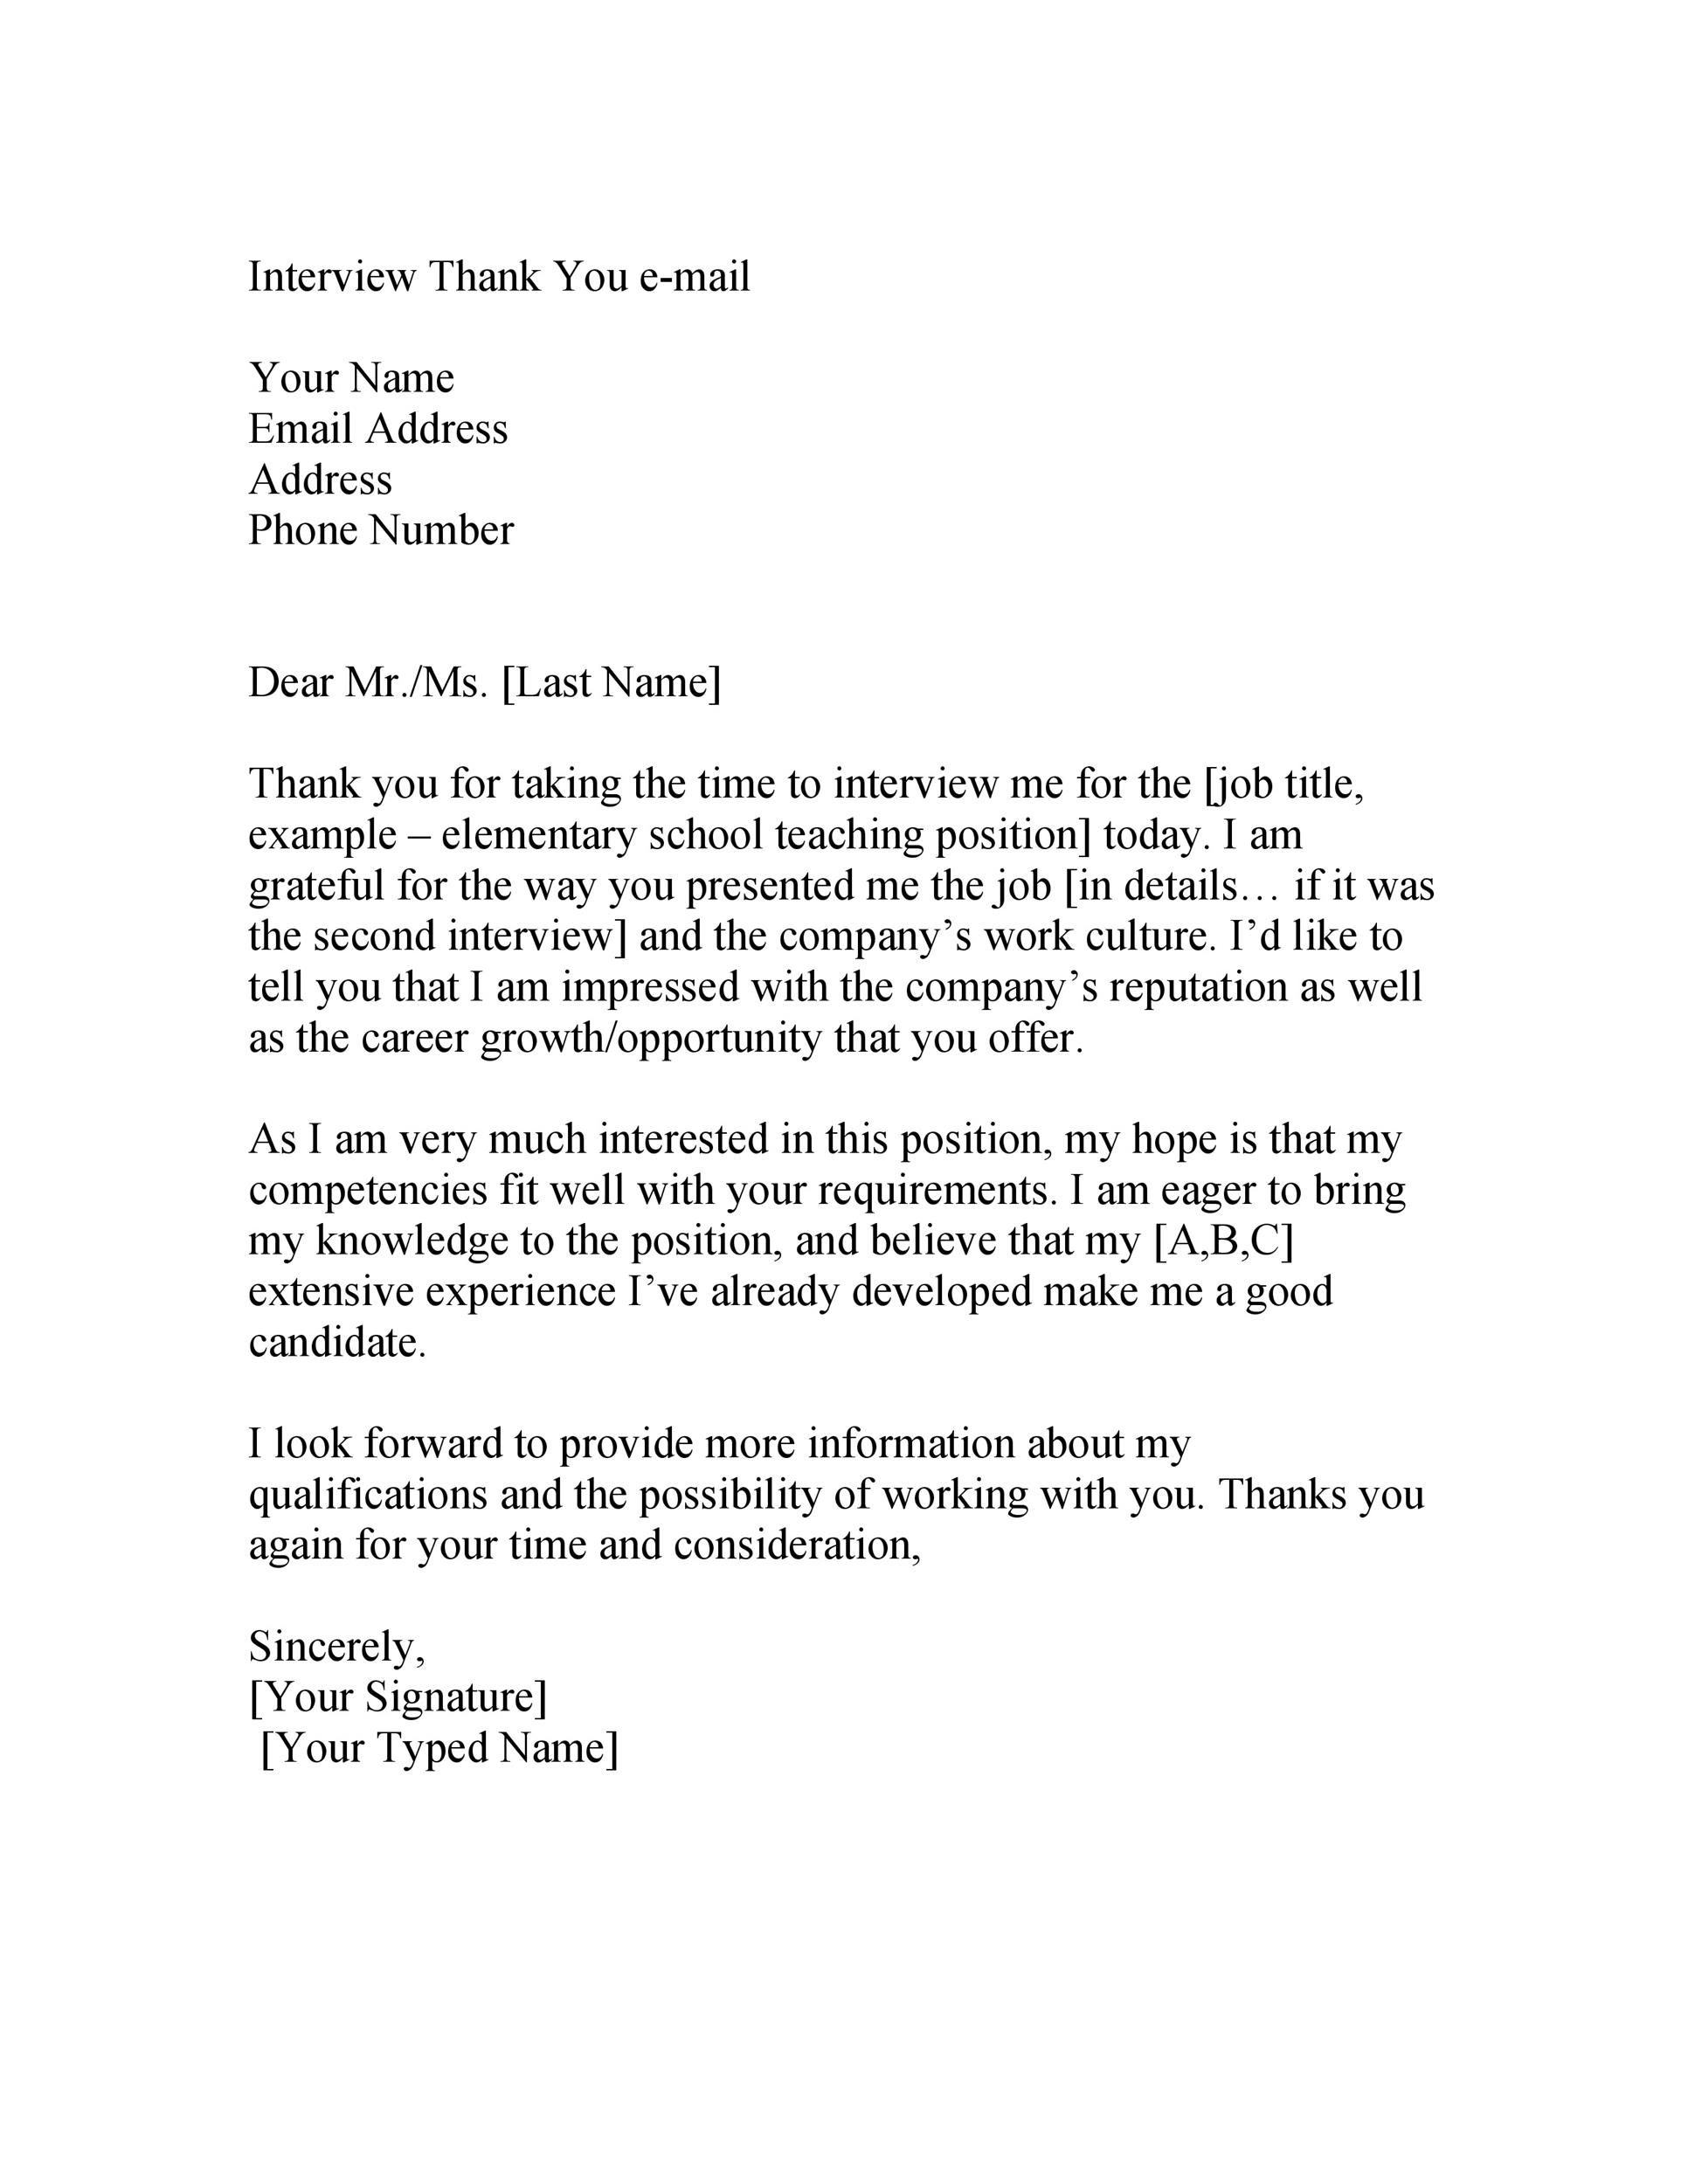 007 Archaicawful Thank You Note Template After Phone Interview High Definition  Sample Letter ExampleFull